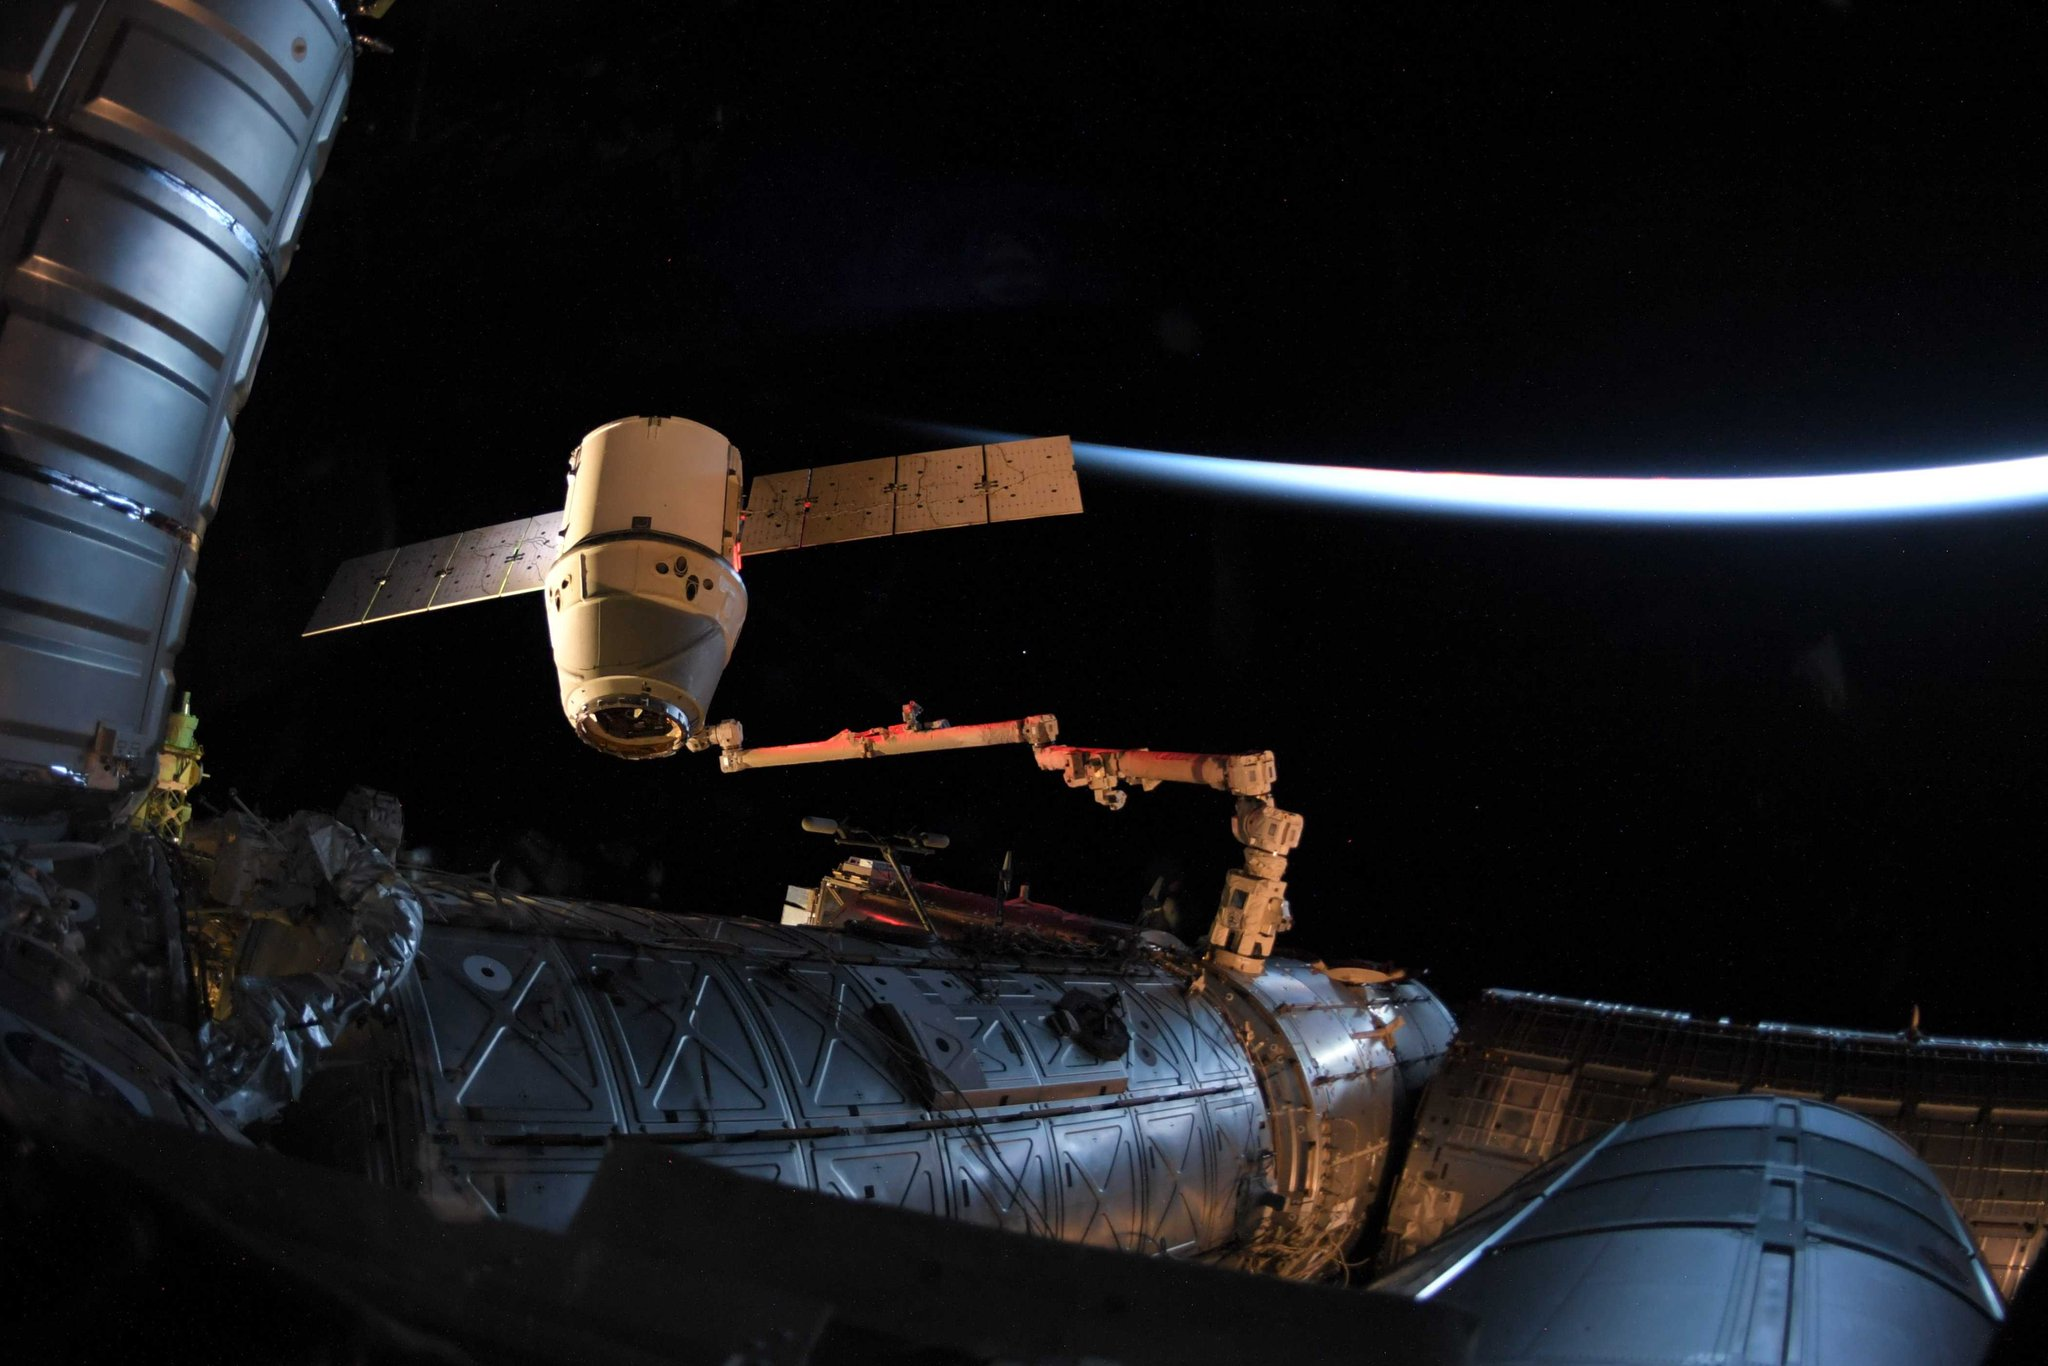 The SpaceX Dragon resupply ship